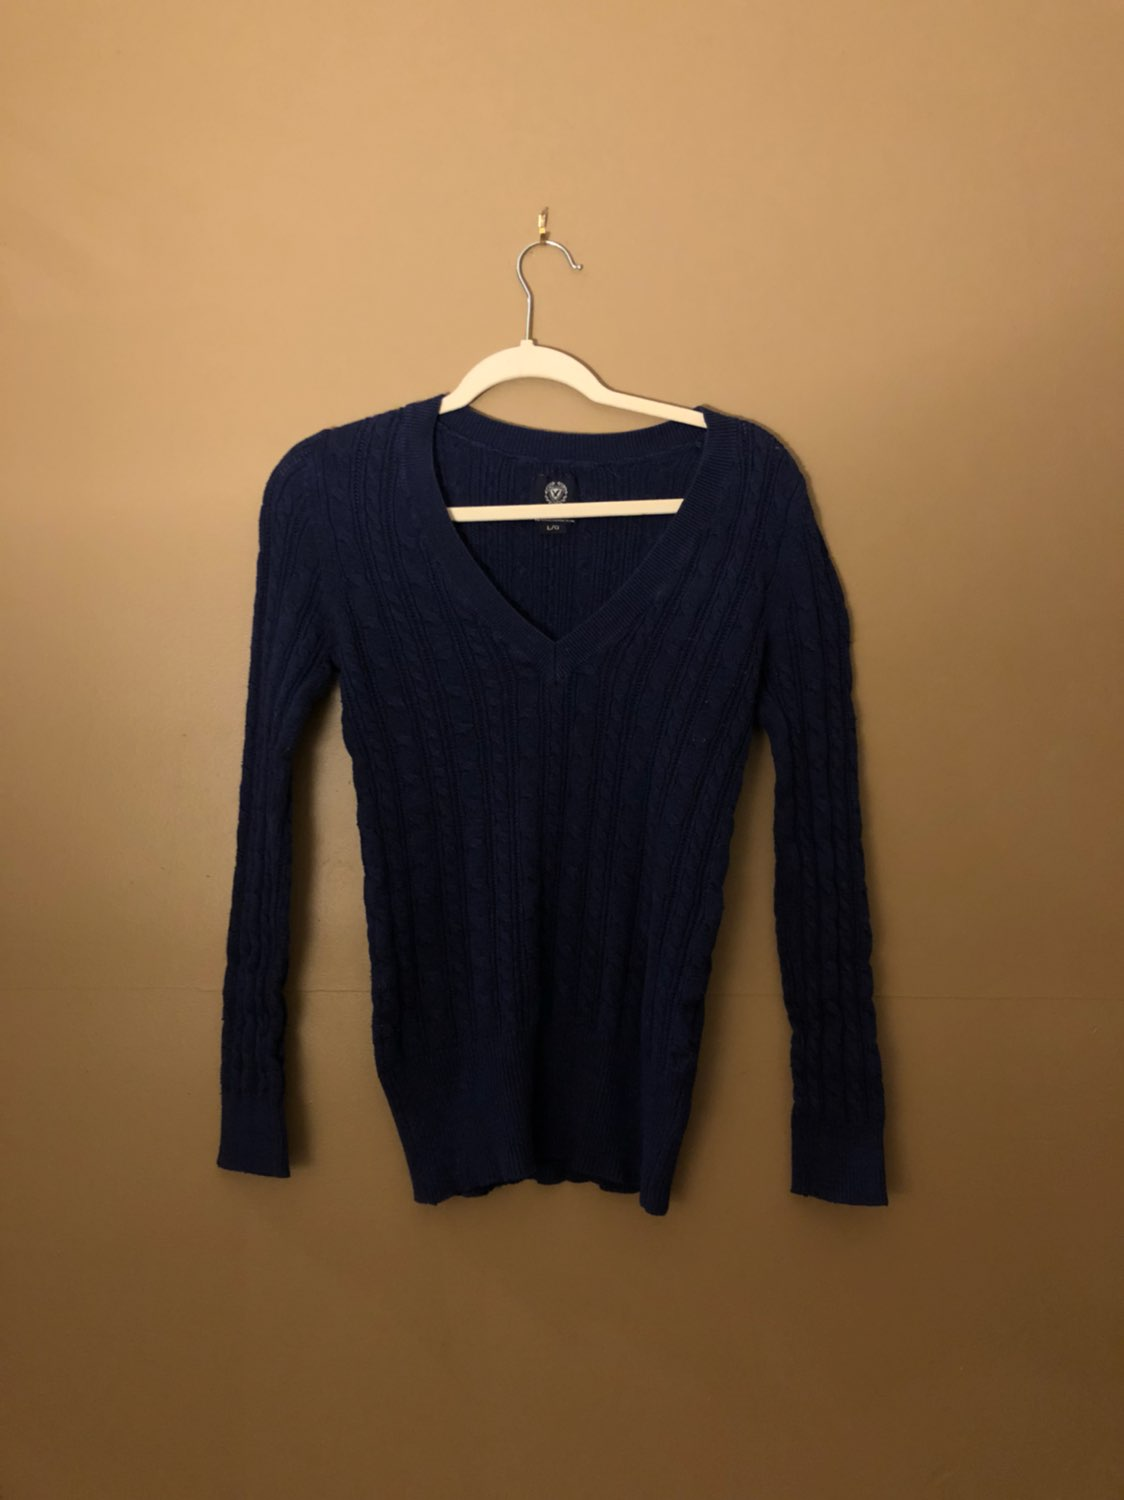 American Eagle AE Sweater Blue Juniors L - Mercari: BUY & SELL ...